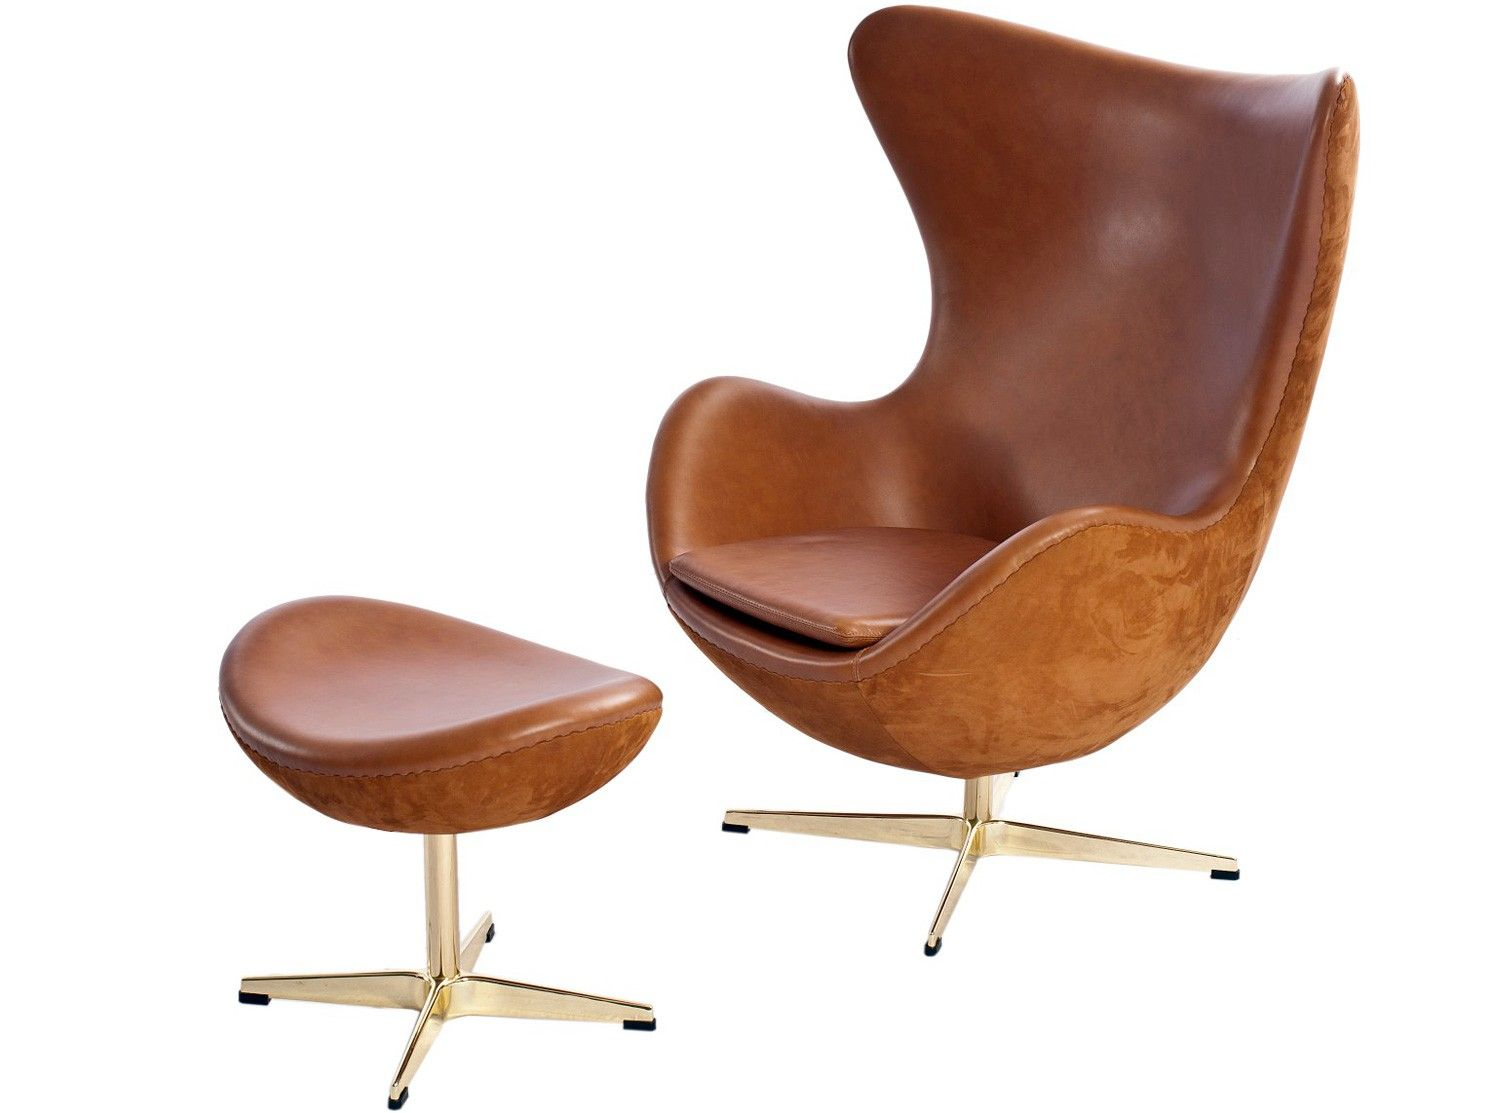 Charming Egg Chair By Arne Jacobsen Nubuck (Anniversary Collector Replica) Design Ideas